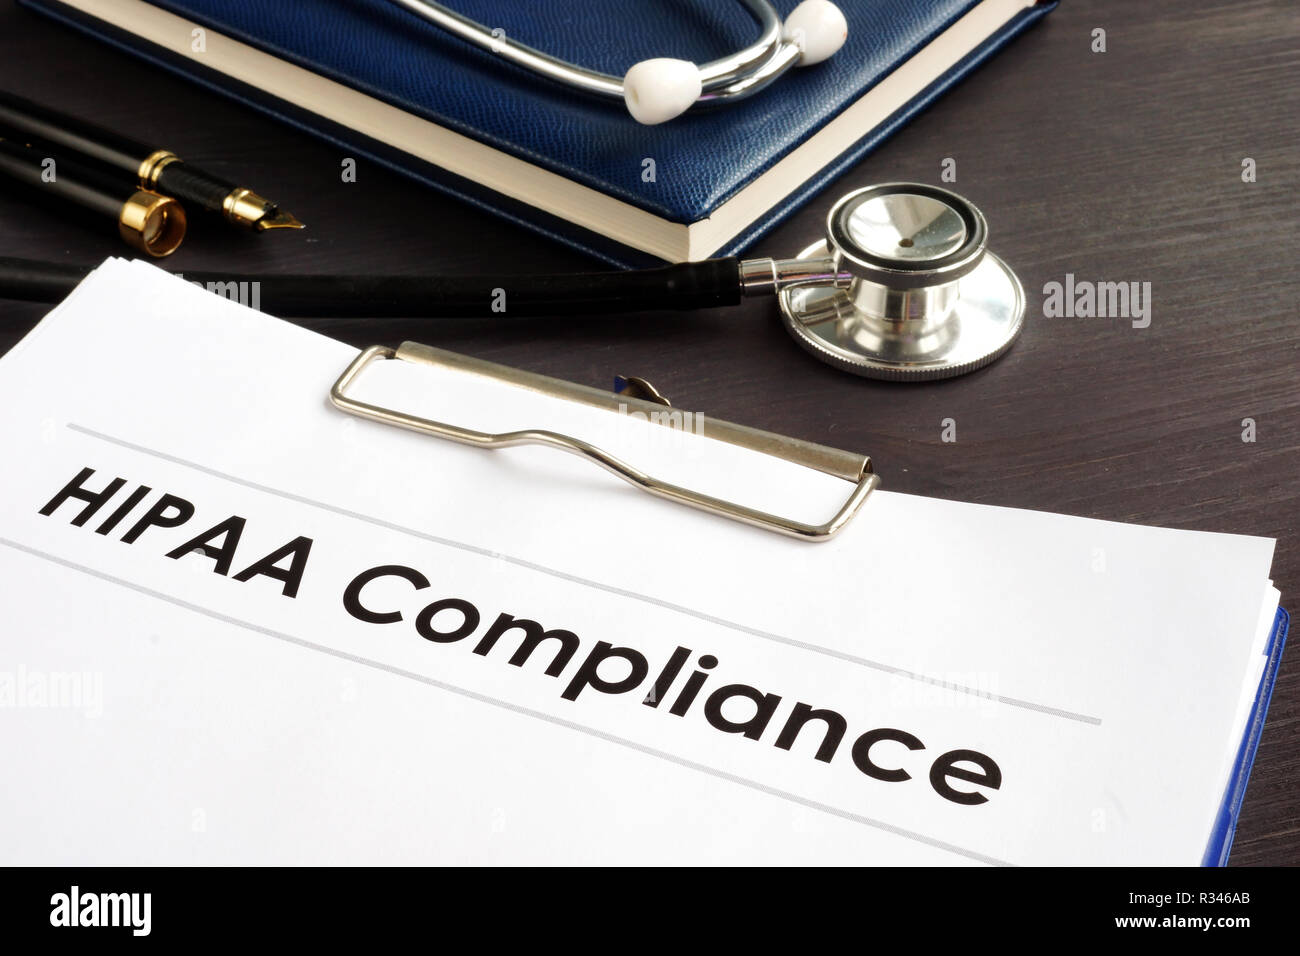 HIPAA Compliance documents with clipboard on a desk. - Stock Image